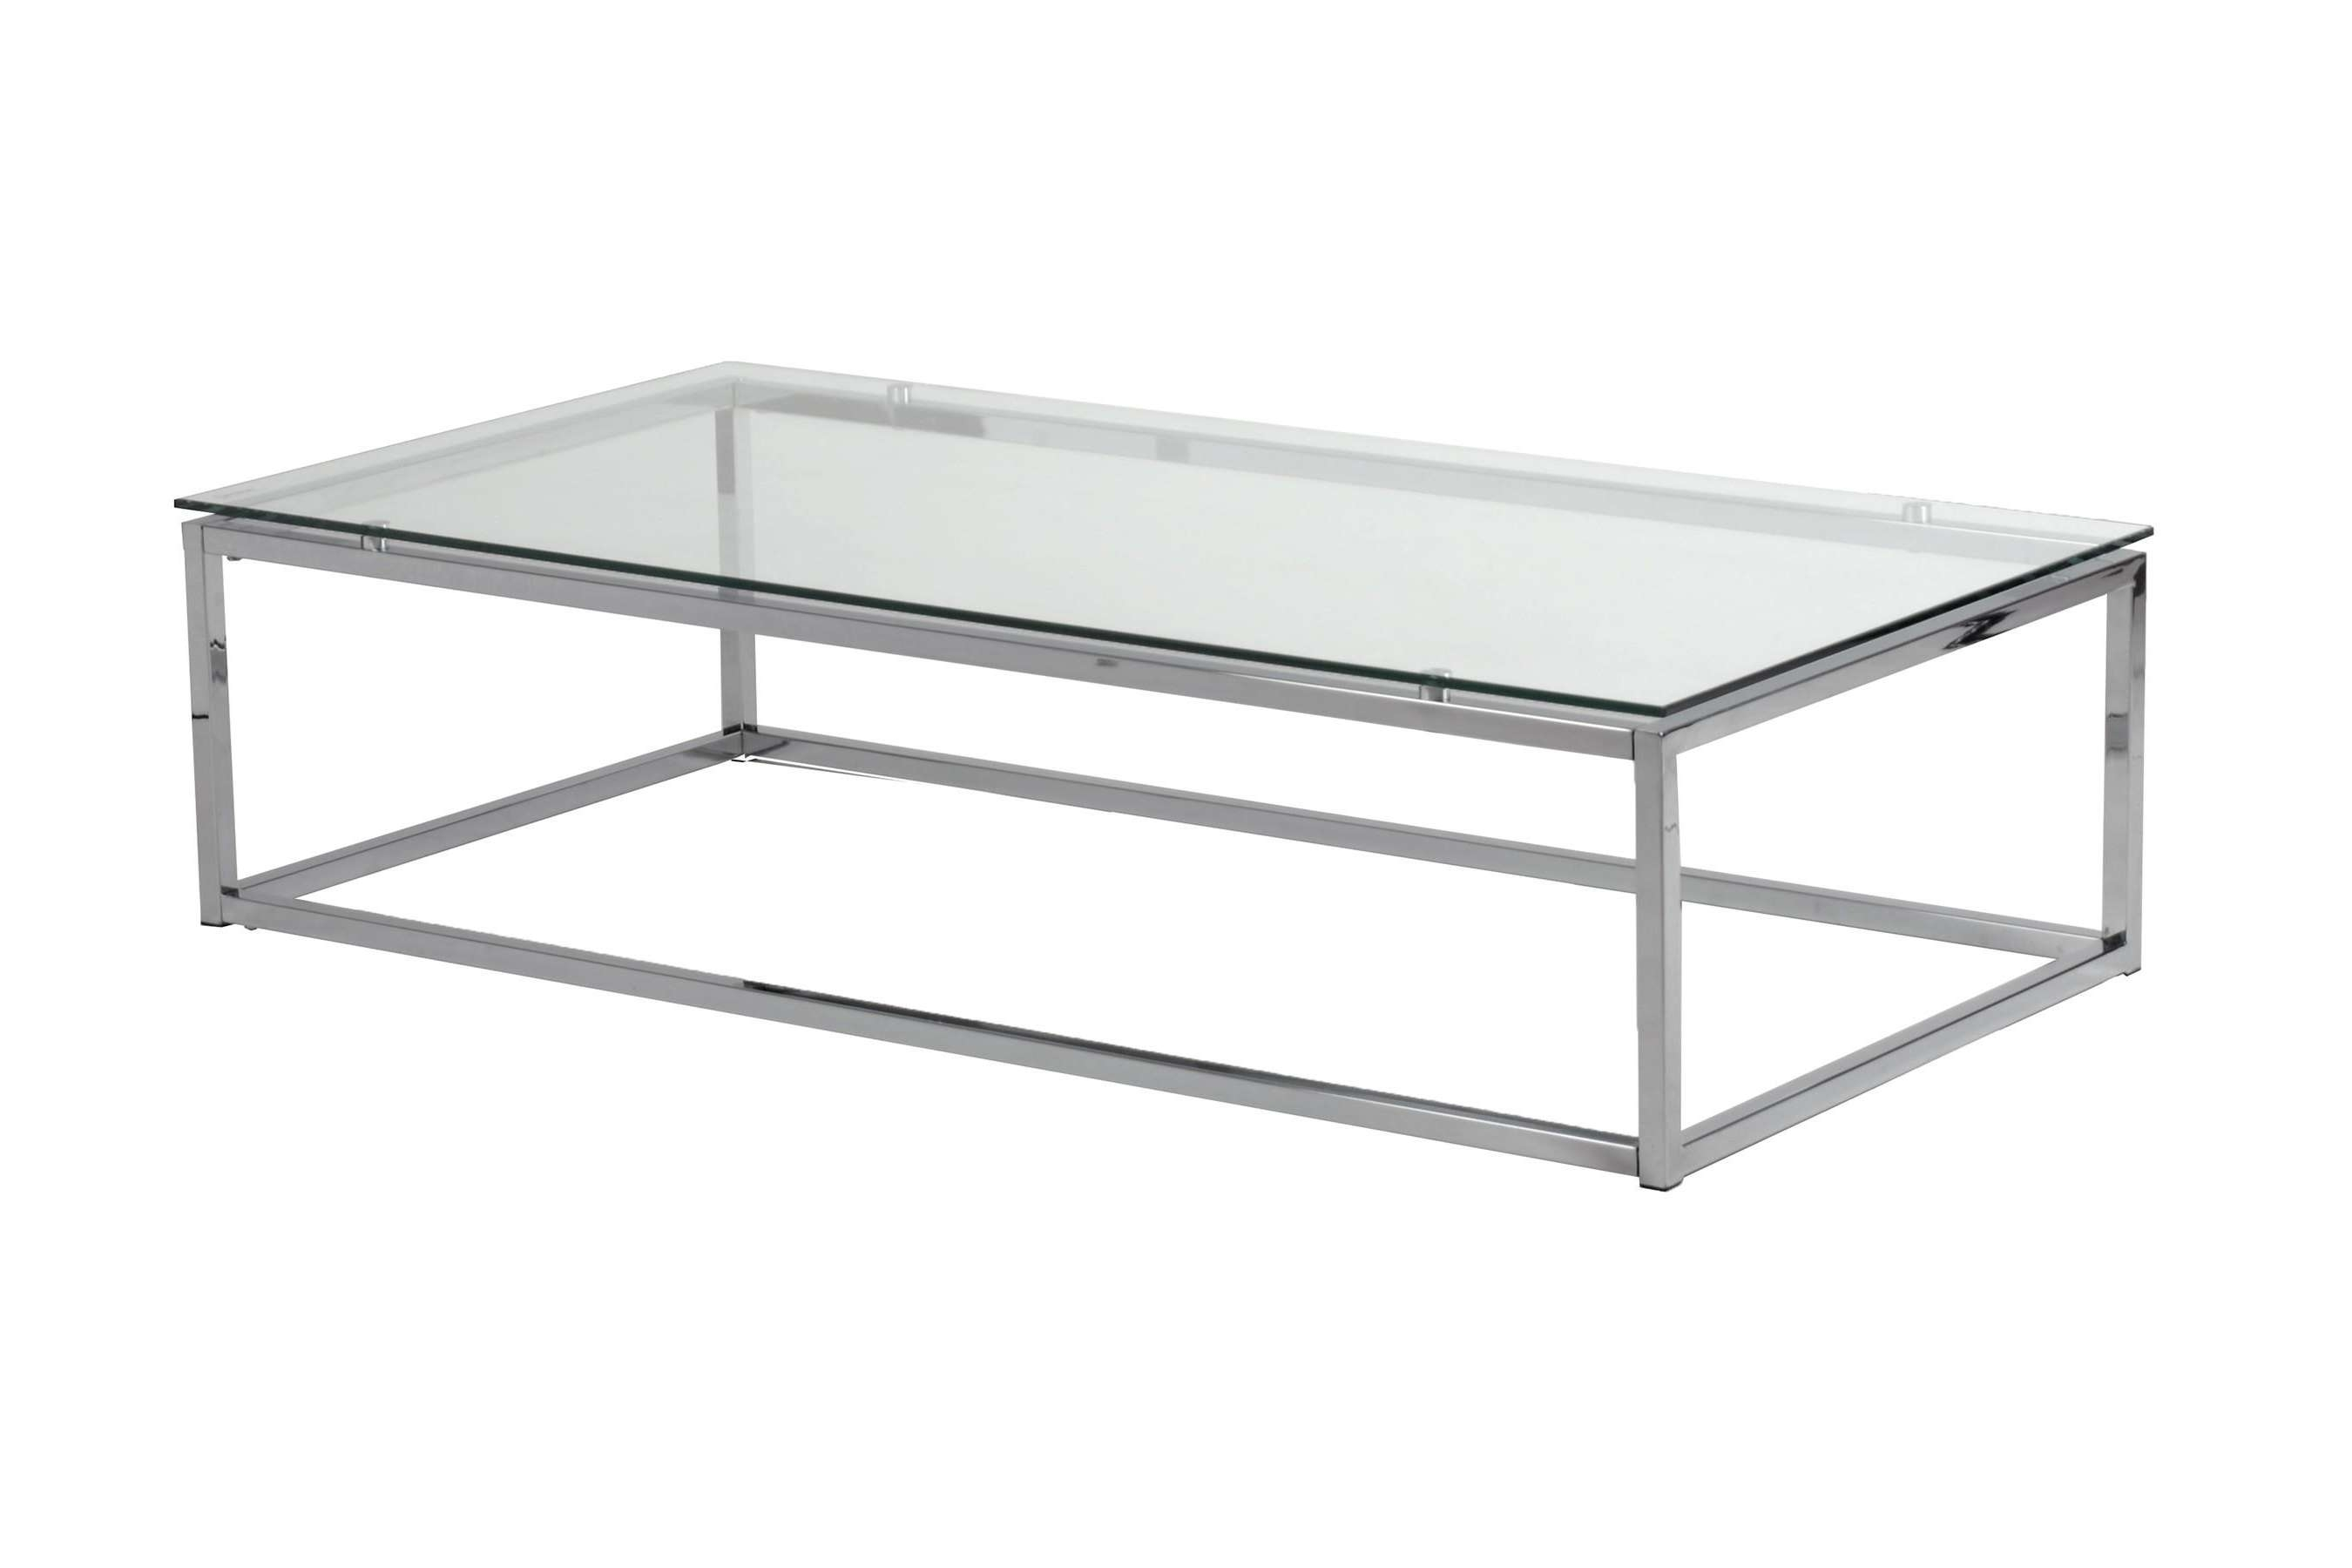 Displaying photos of metal glass coffee tables view 5 of 20 photos most recently released metal glass coffee tables with glass display large square glass and metal coffee watchthetrailerfo